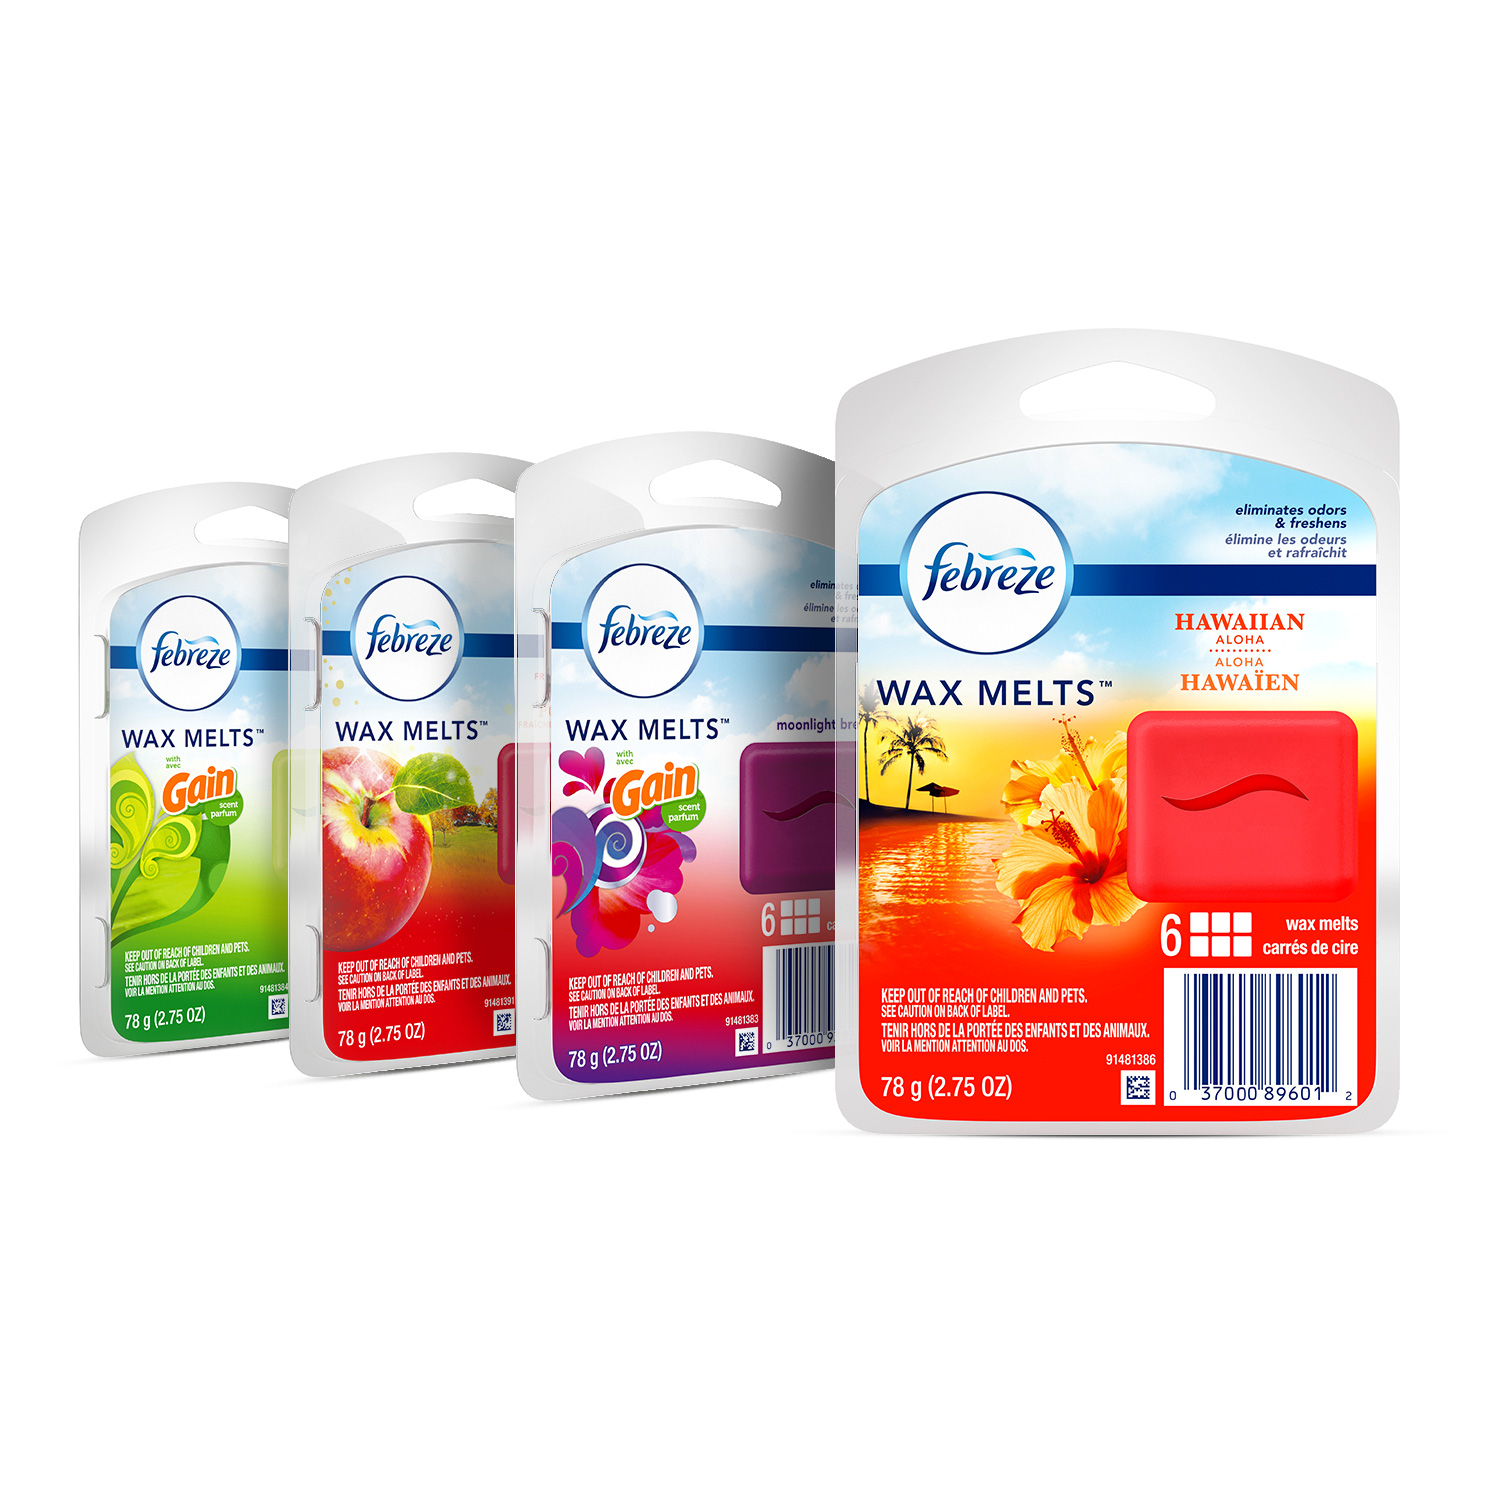 Febreze Wax Melts Air Freshener Variety Pack, Fresh-Pressed Apple, Hawaiian Aloha, Moonlight Breeze and Gain Original Scents (4 pack, 6 count each)